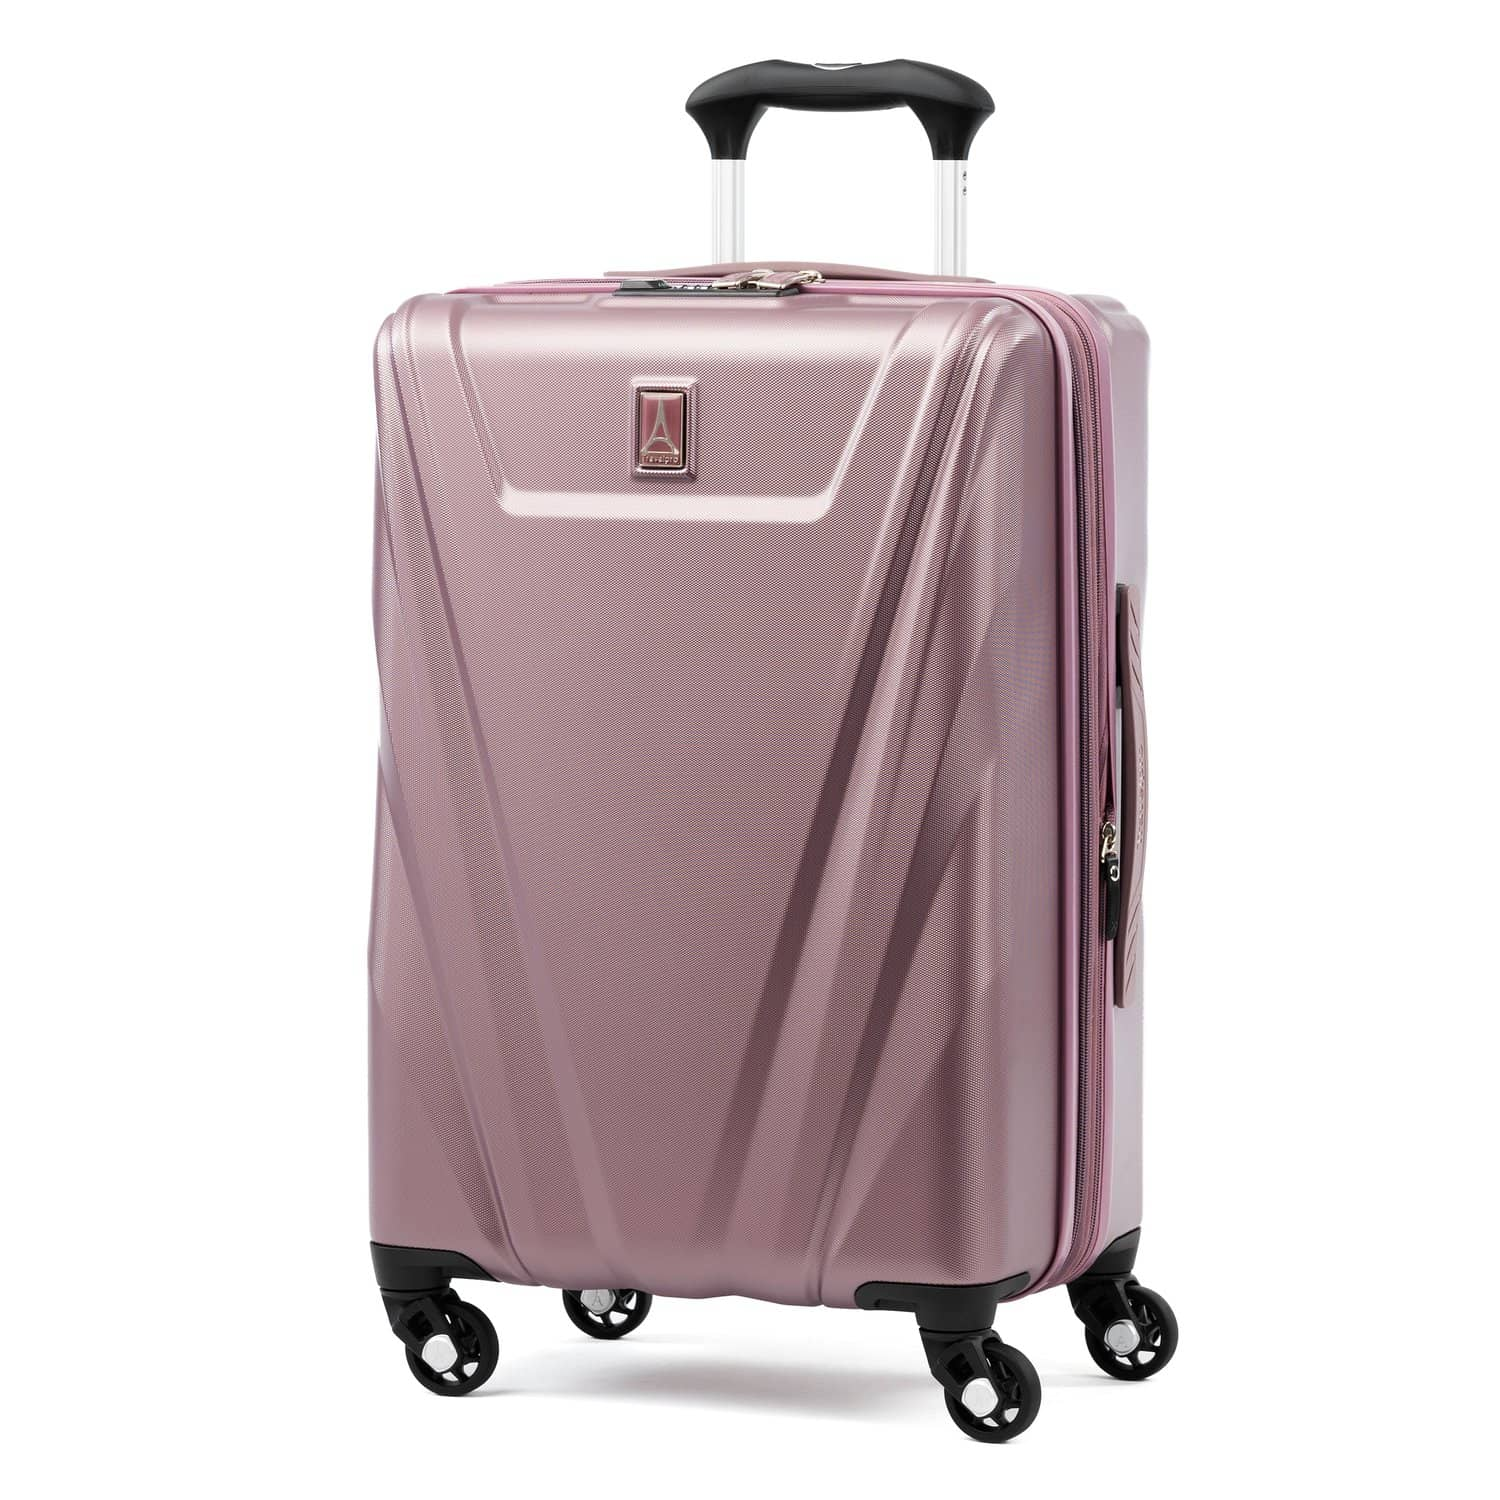 Travelpro Maxlite® 5 Expandable Carry-on Hardside Spinner DUSTY ROSE